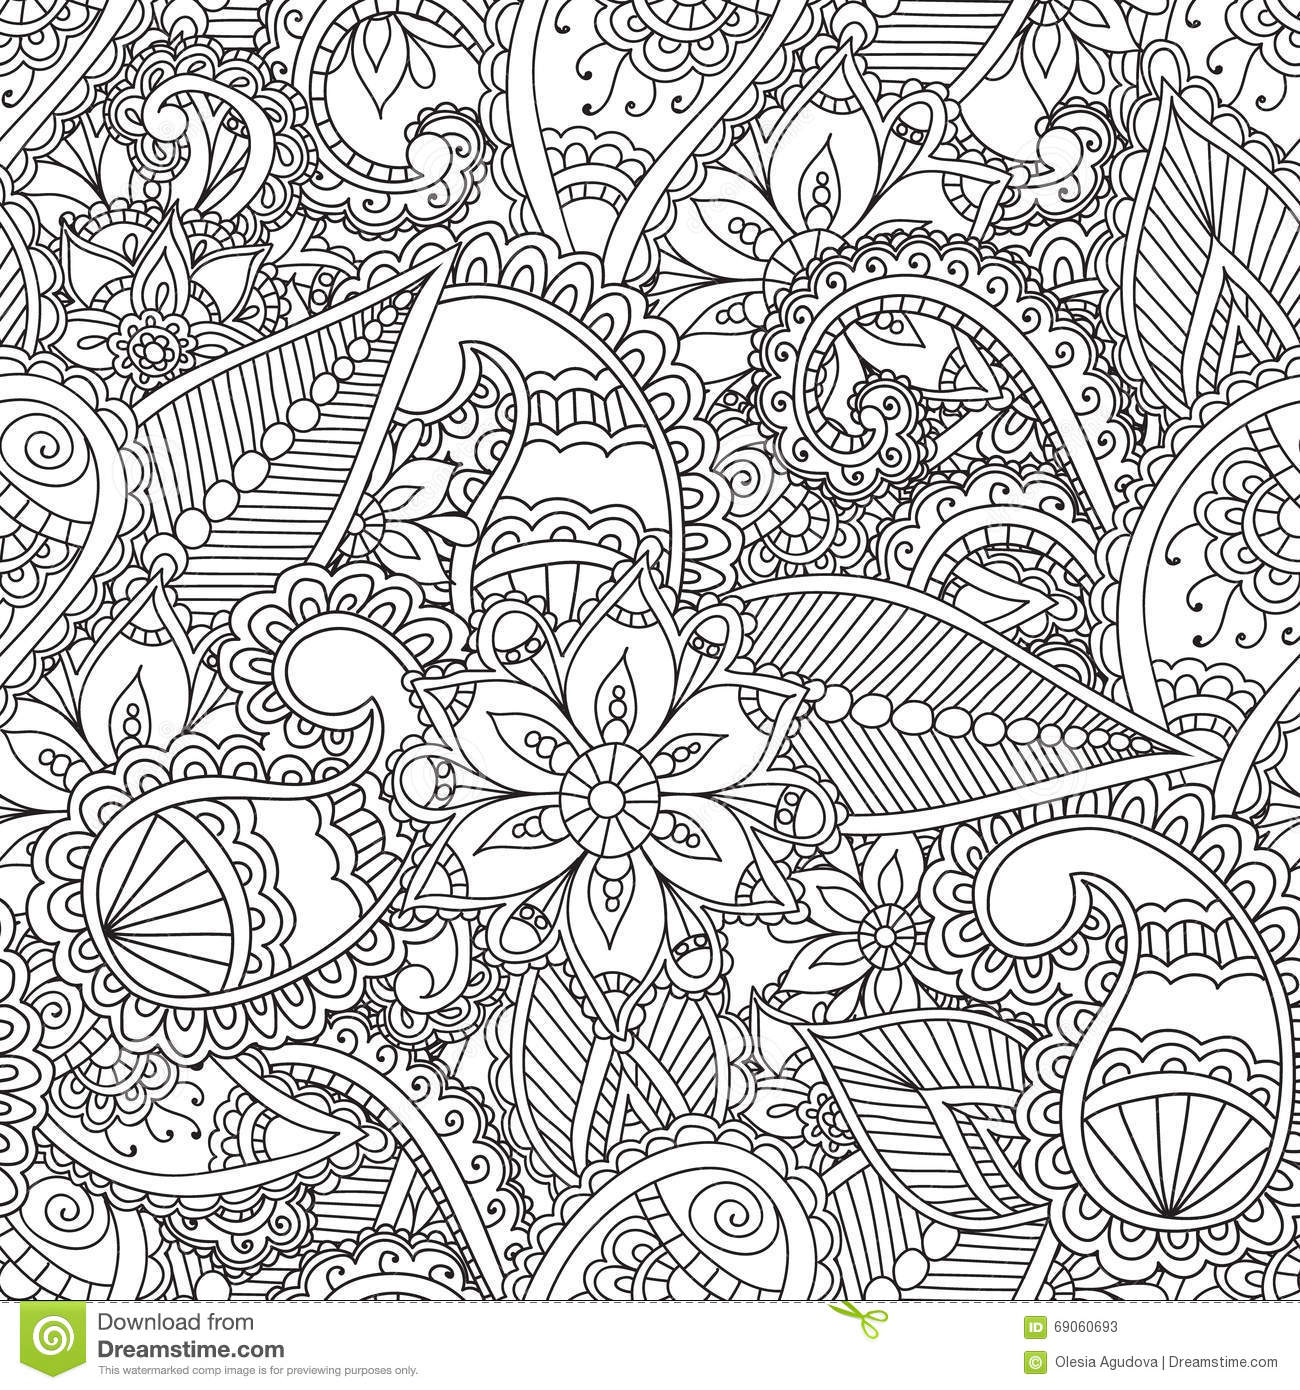 Coloring Pages For Adults Stock Vector Illustration Of Doodle